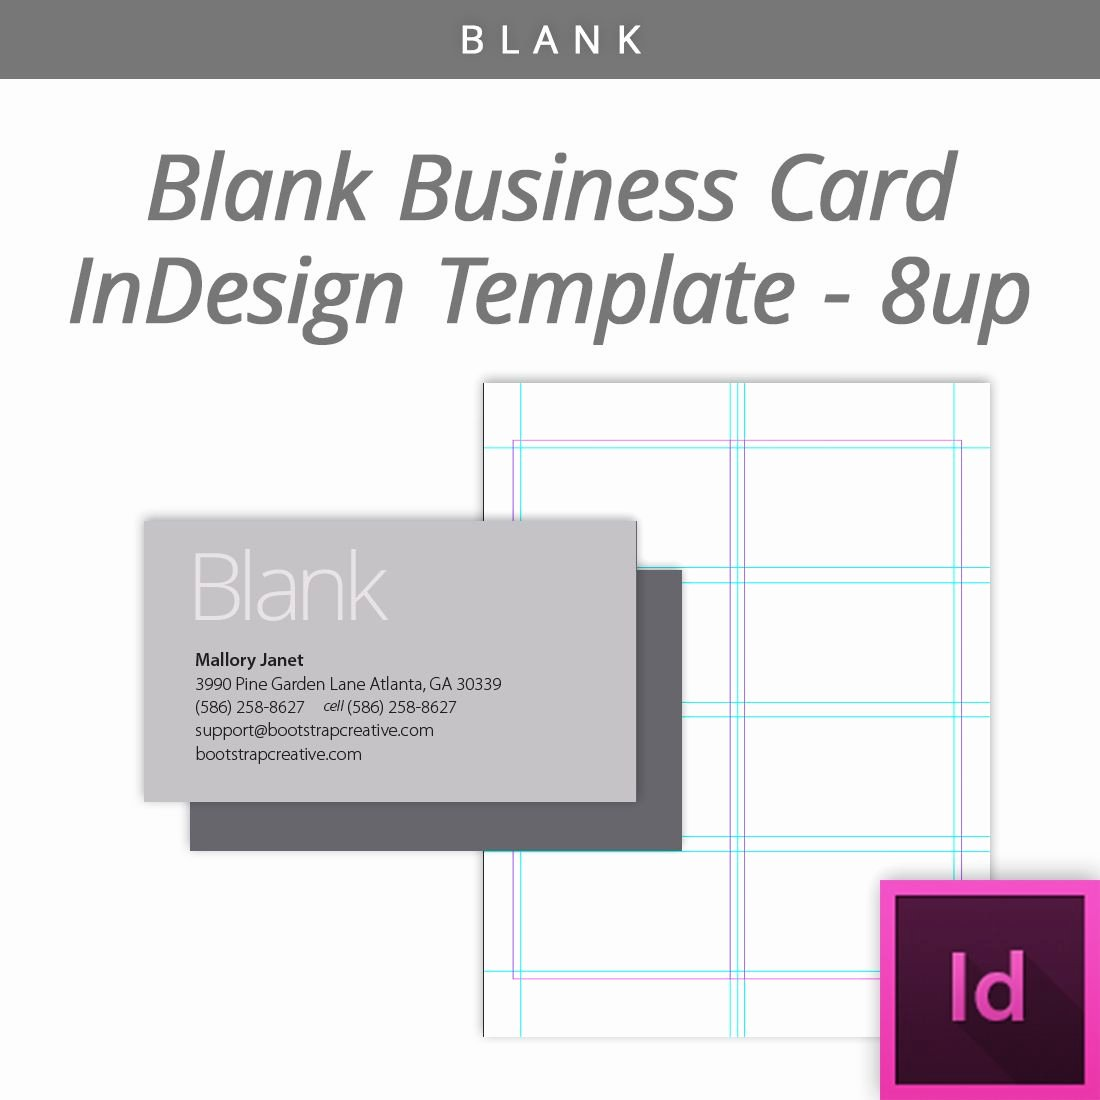 Indesign Business Plan Template Unique Blank Indesign Business Card Template 8 Up Free Download